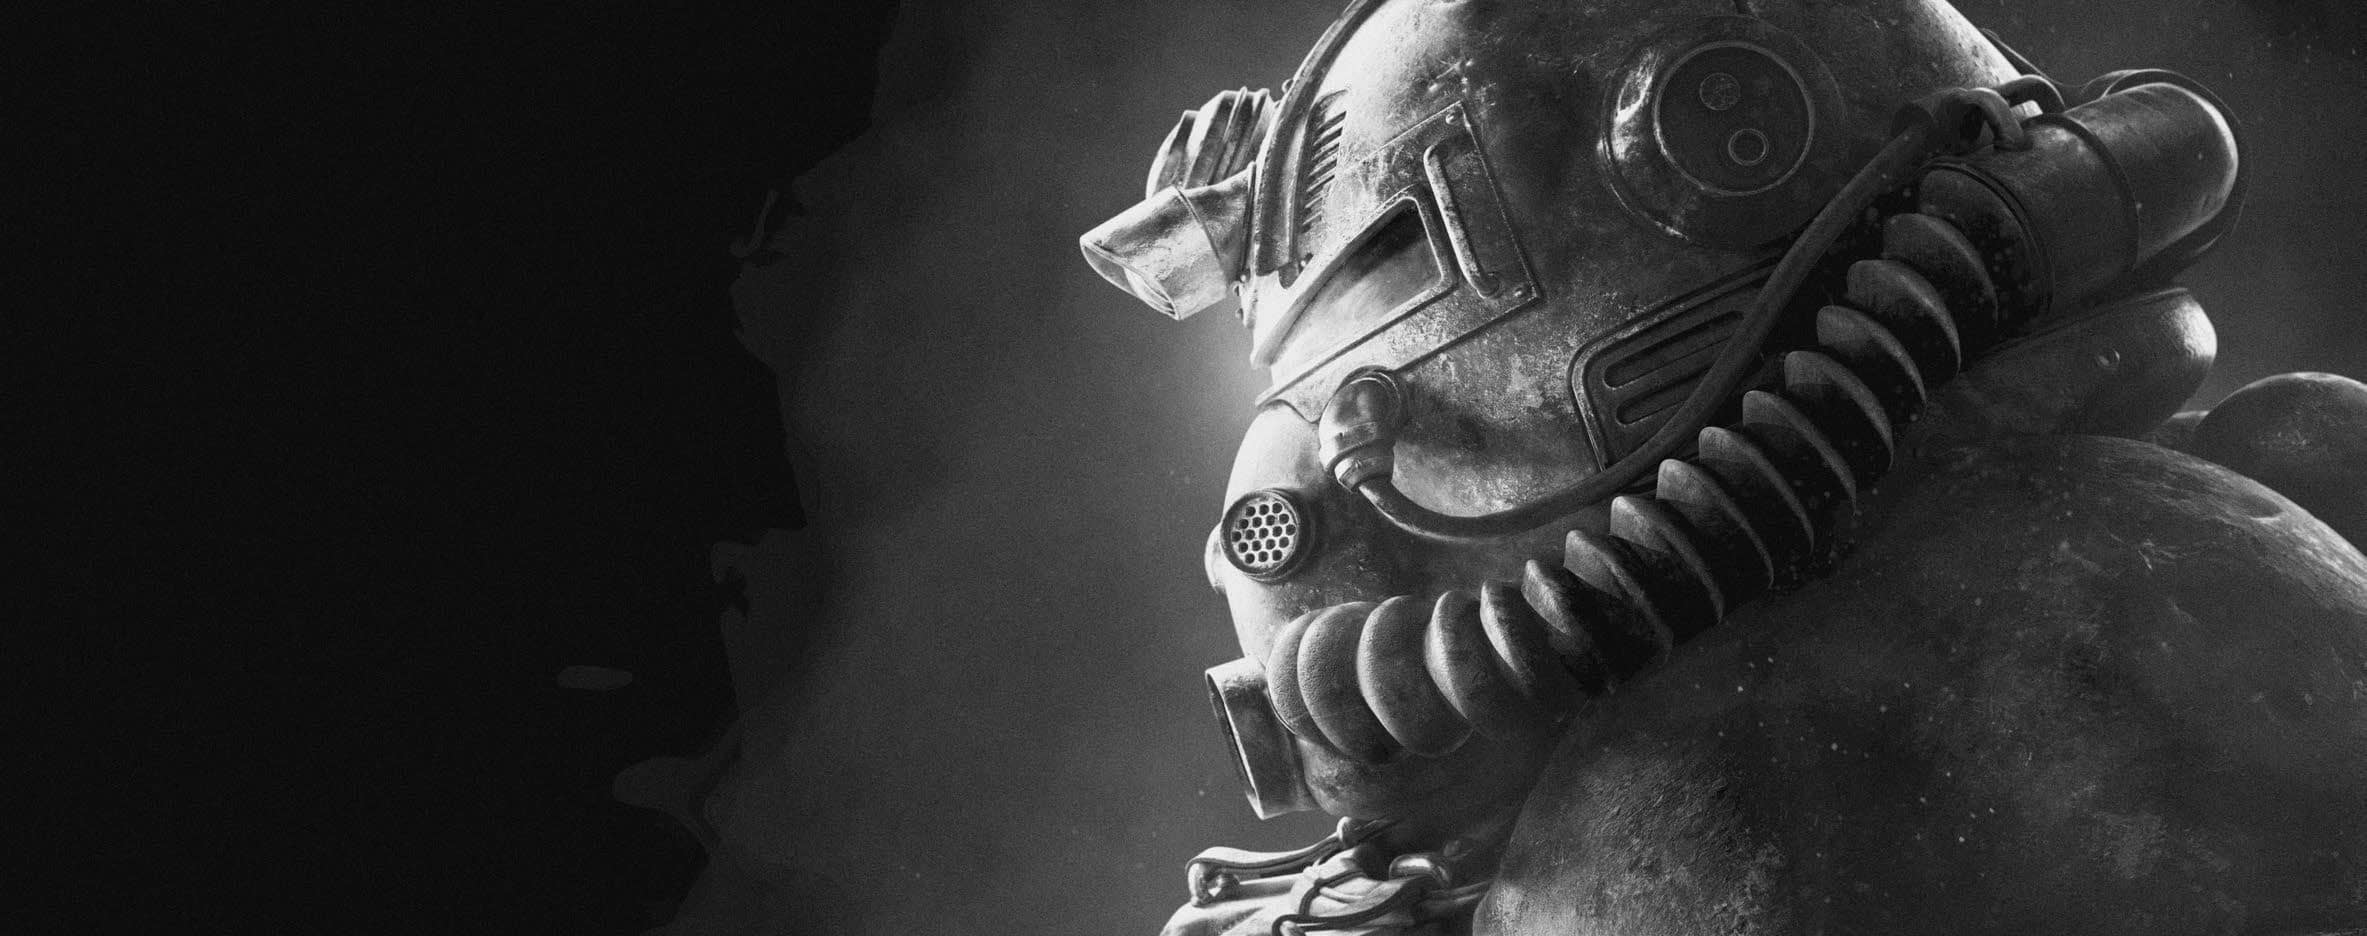 THE LONG GAME - FALLOUT 76